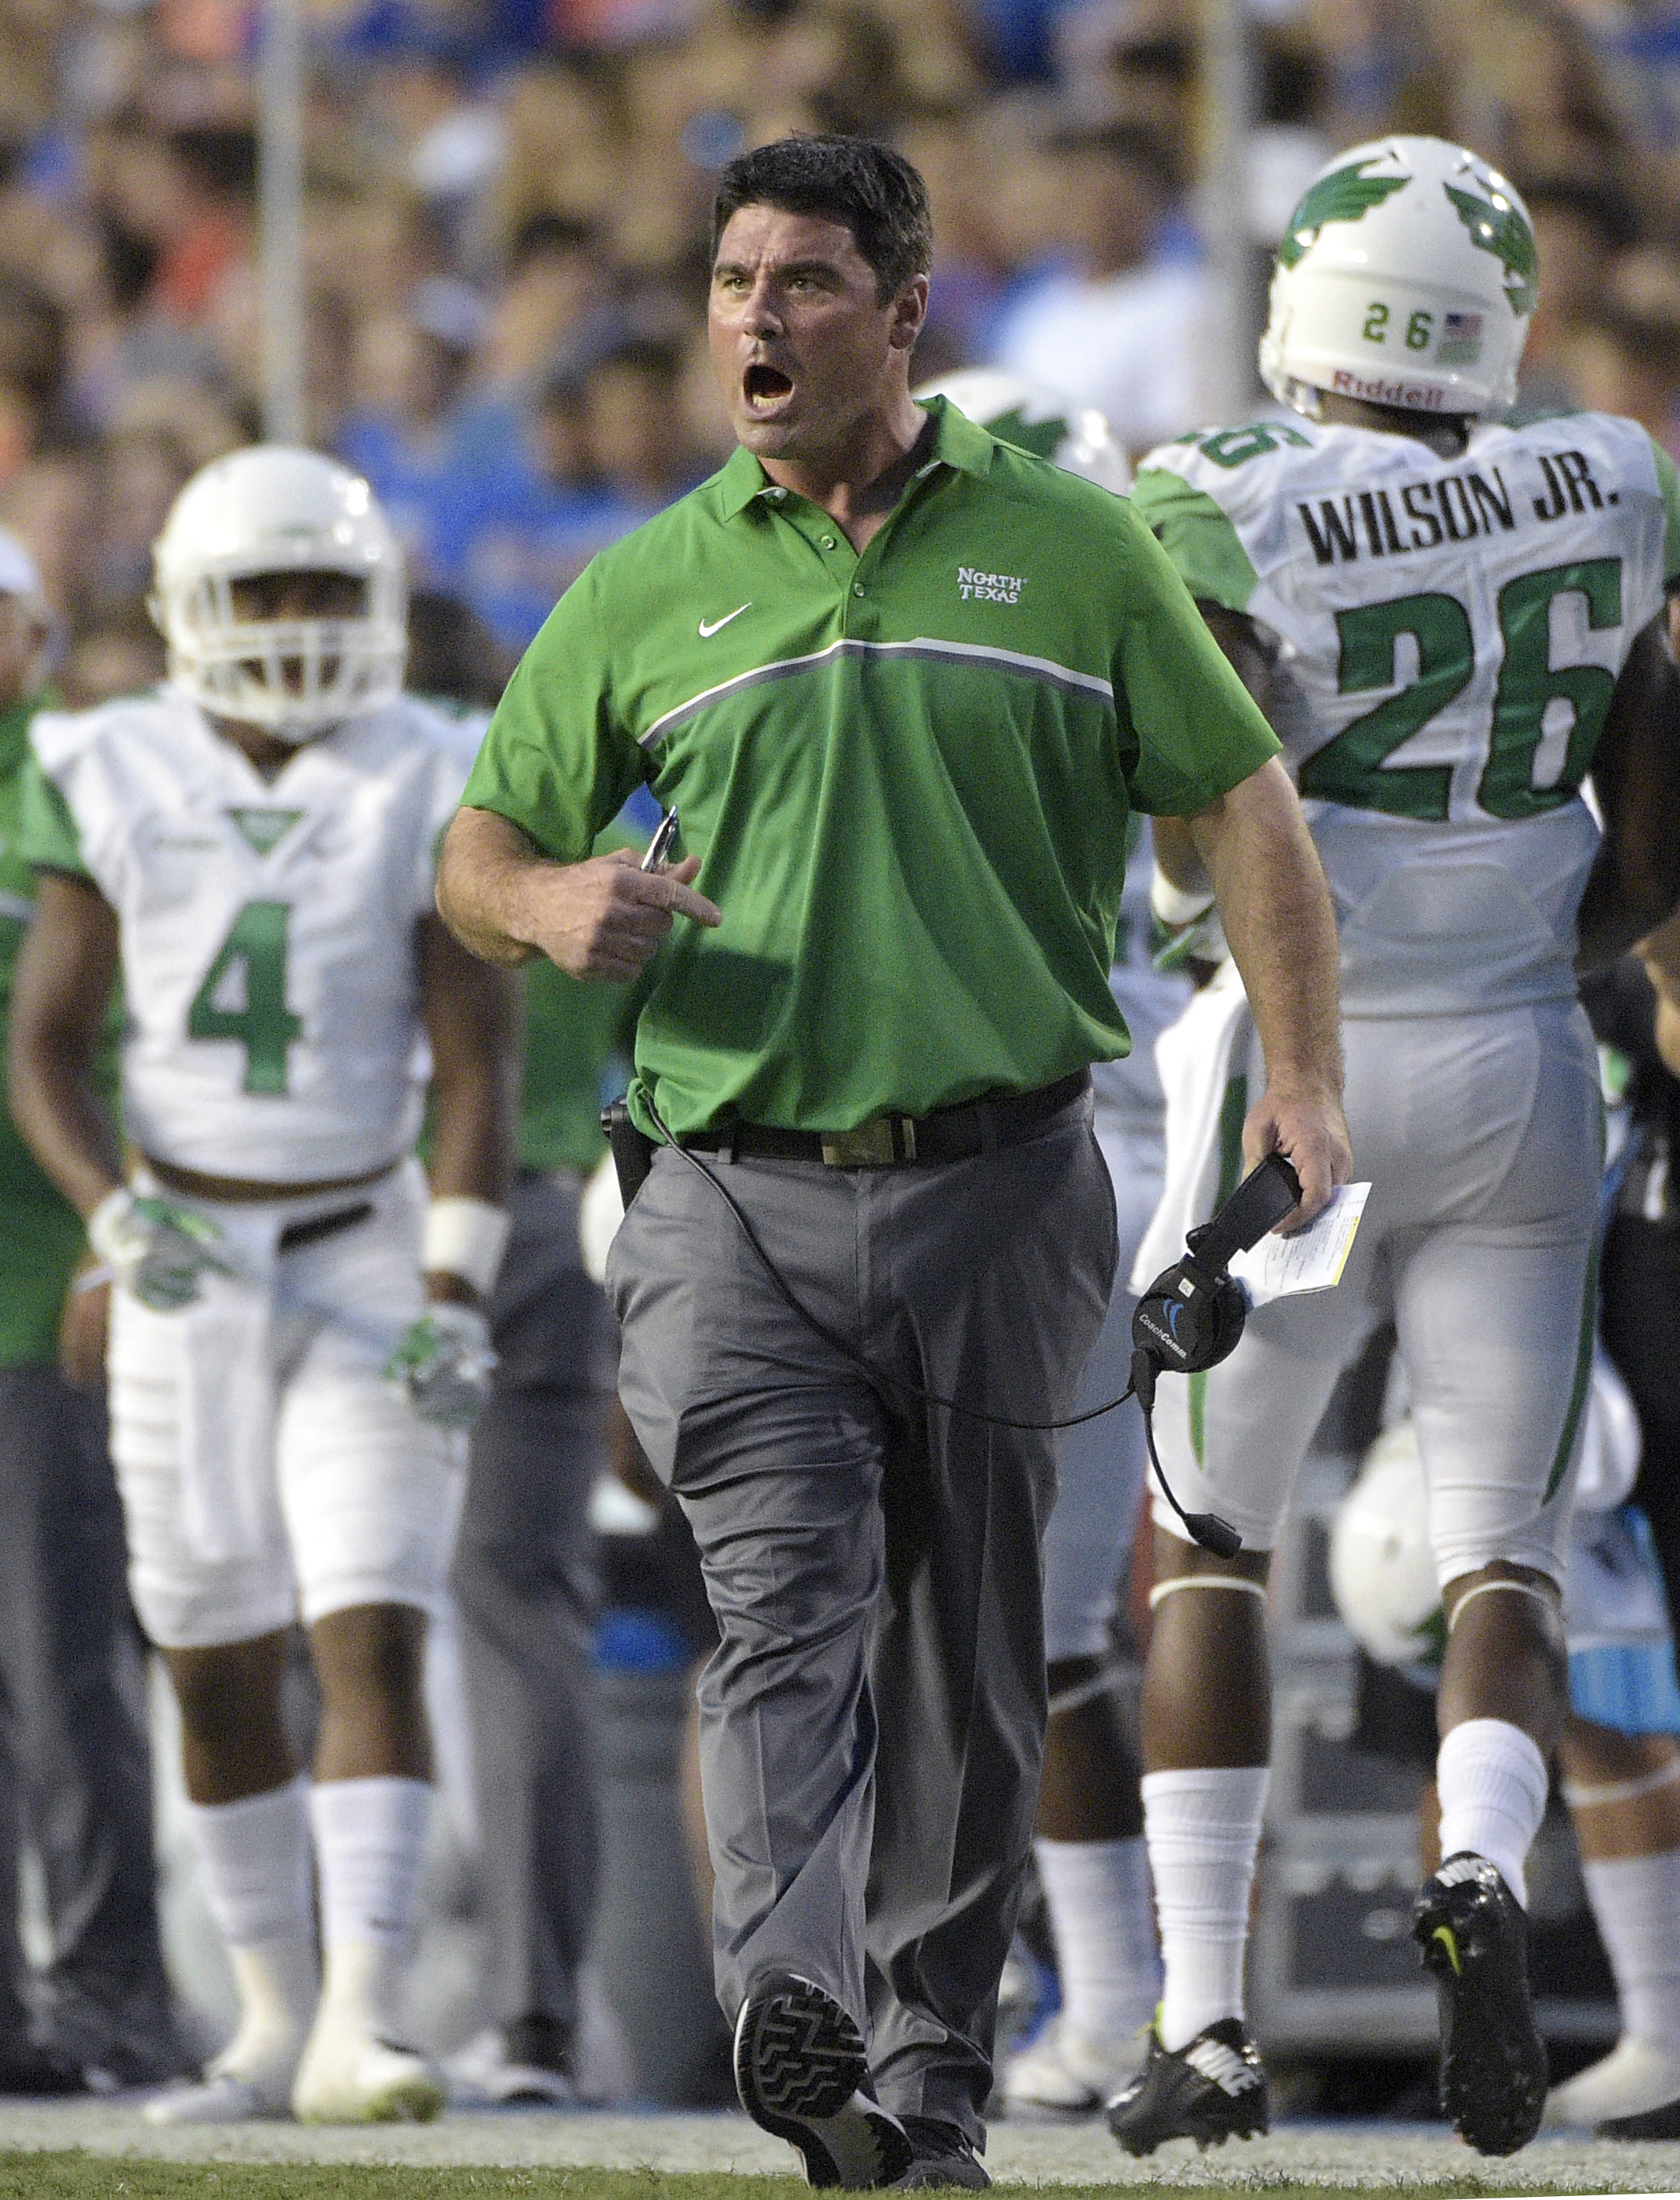 FILE - In this Saturday, Sept. 17, 2016, file photo, North Texas coach Seth Littrell, center, reacts after quarterback Mason Fine was sacked by Florida in the end zone for a safety during the first half of an NCAA college football game in Gainesville, Fla